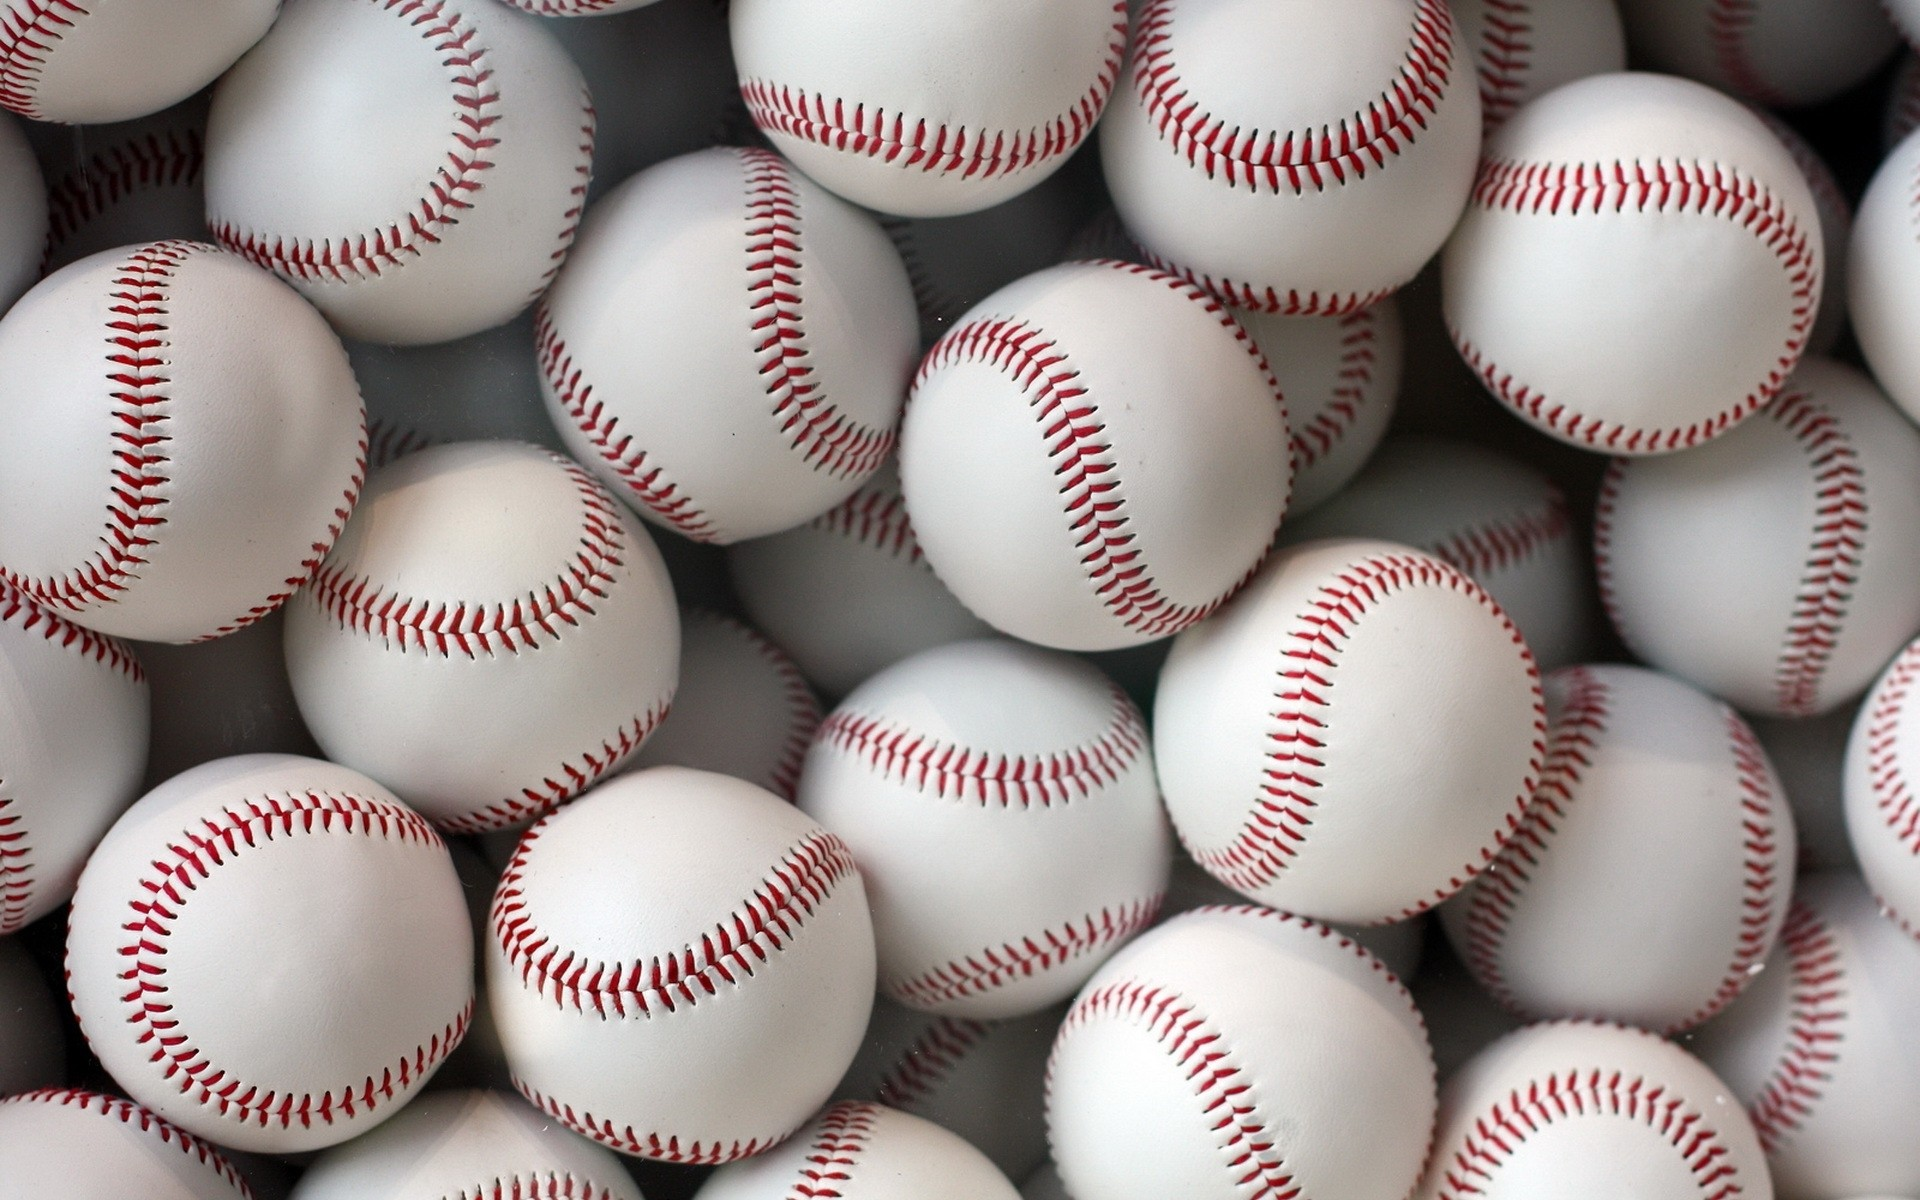 1920x1200 Baseball balls Wallpaper